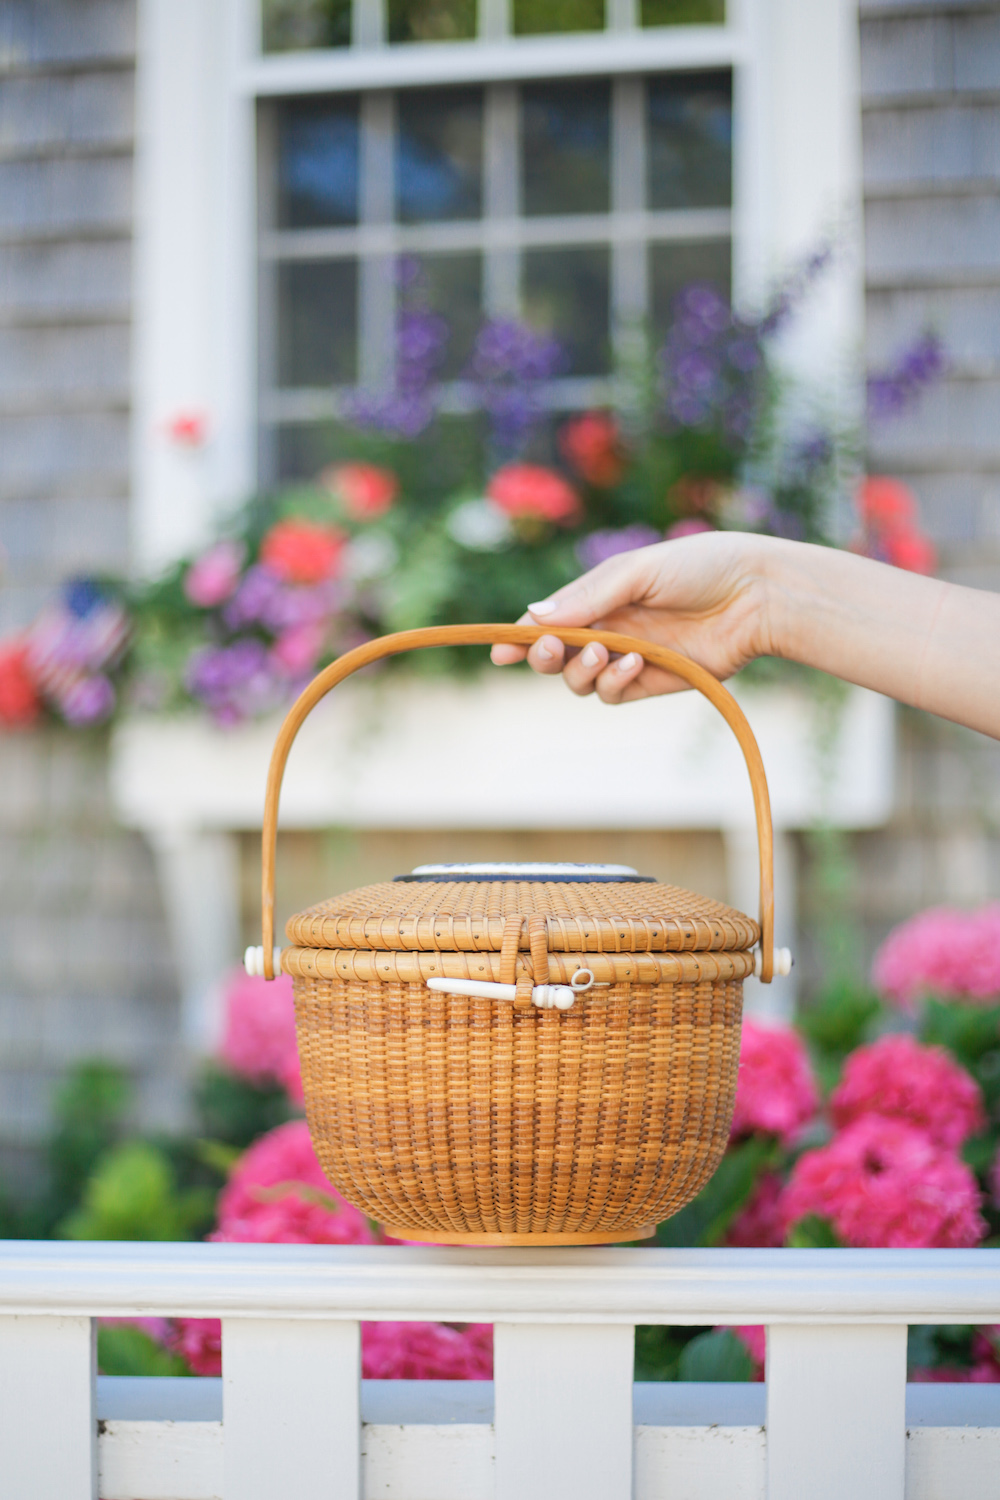 design-darling-nantucket-lightship-basket